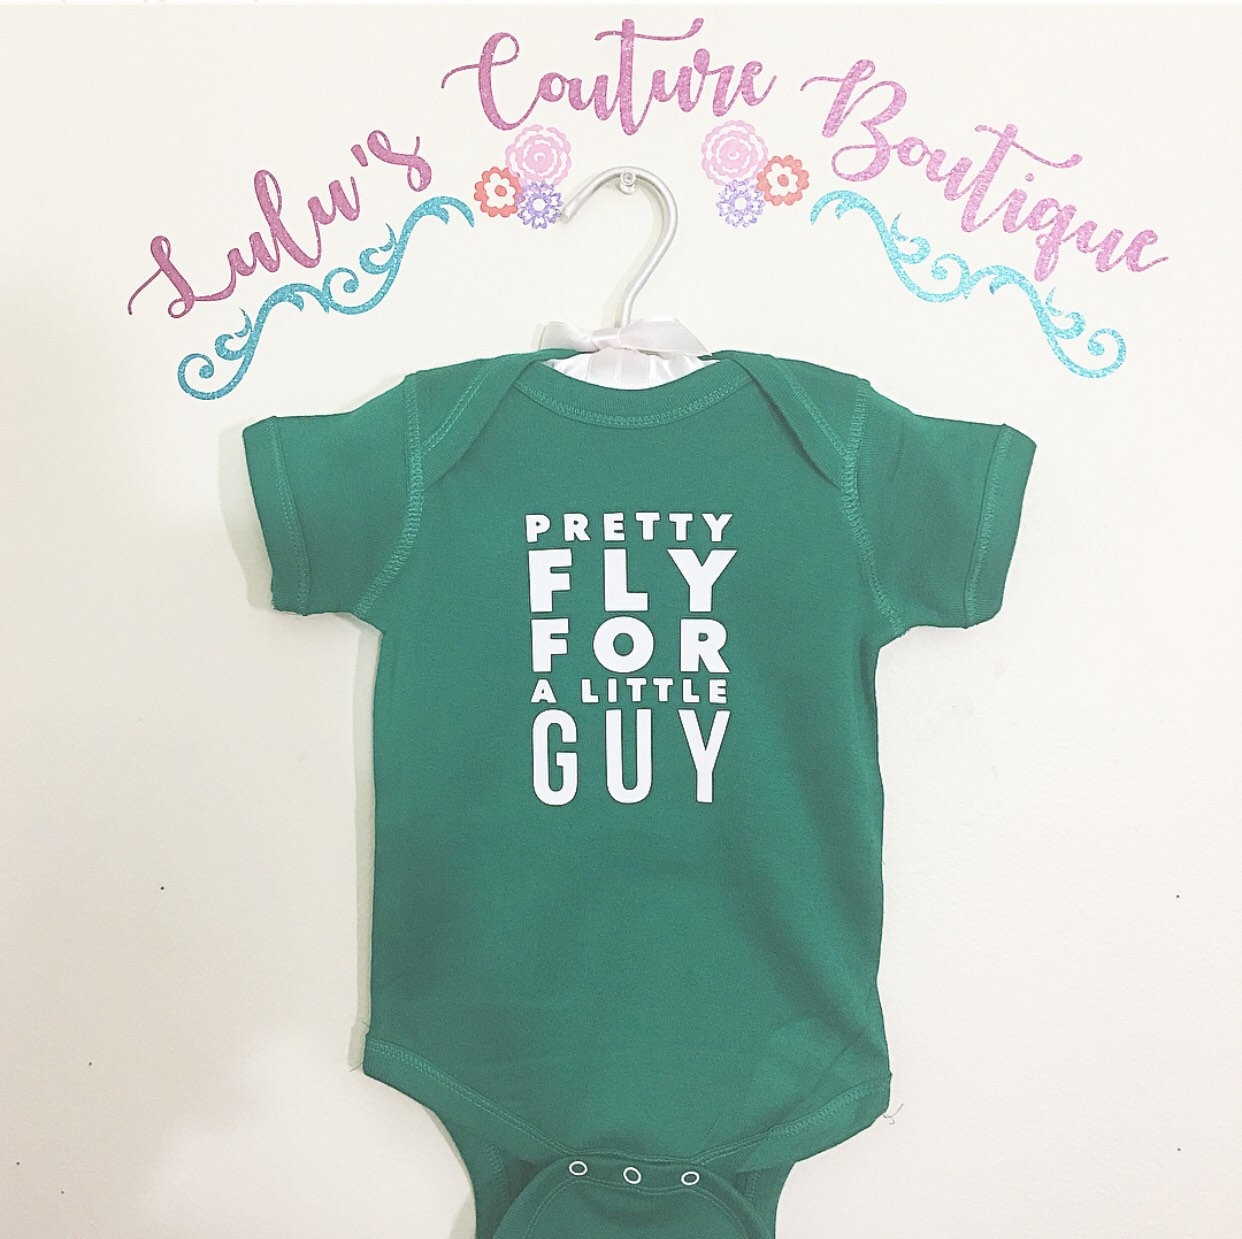 9ce875e185c7 Pretty Fly For a Little Guy New Baby Onesie newborn outfit coming ...